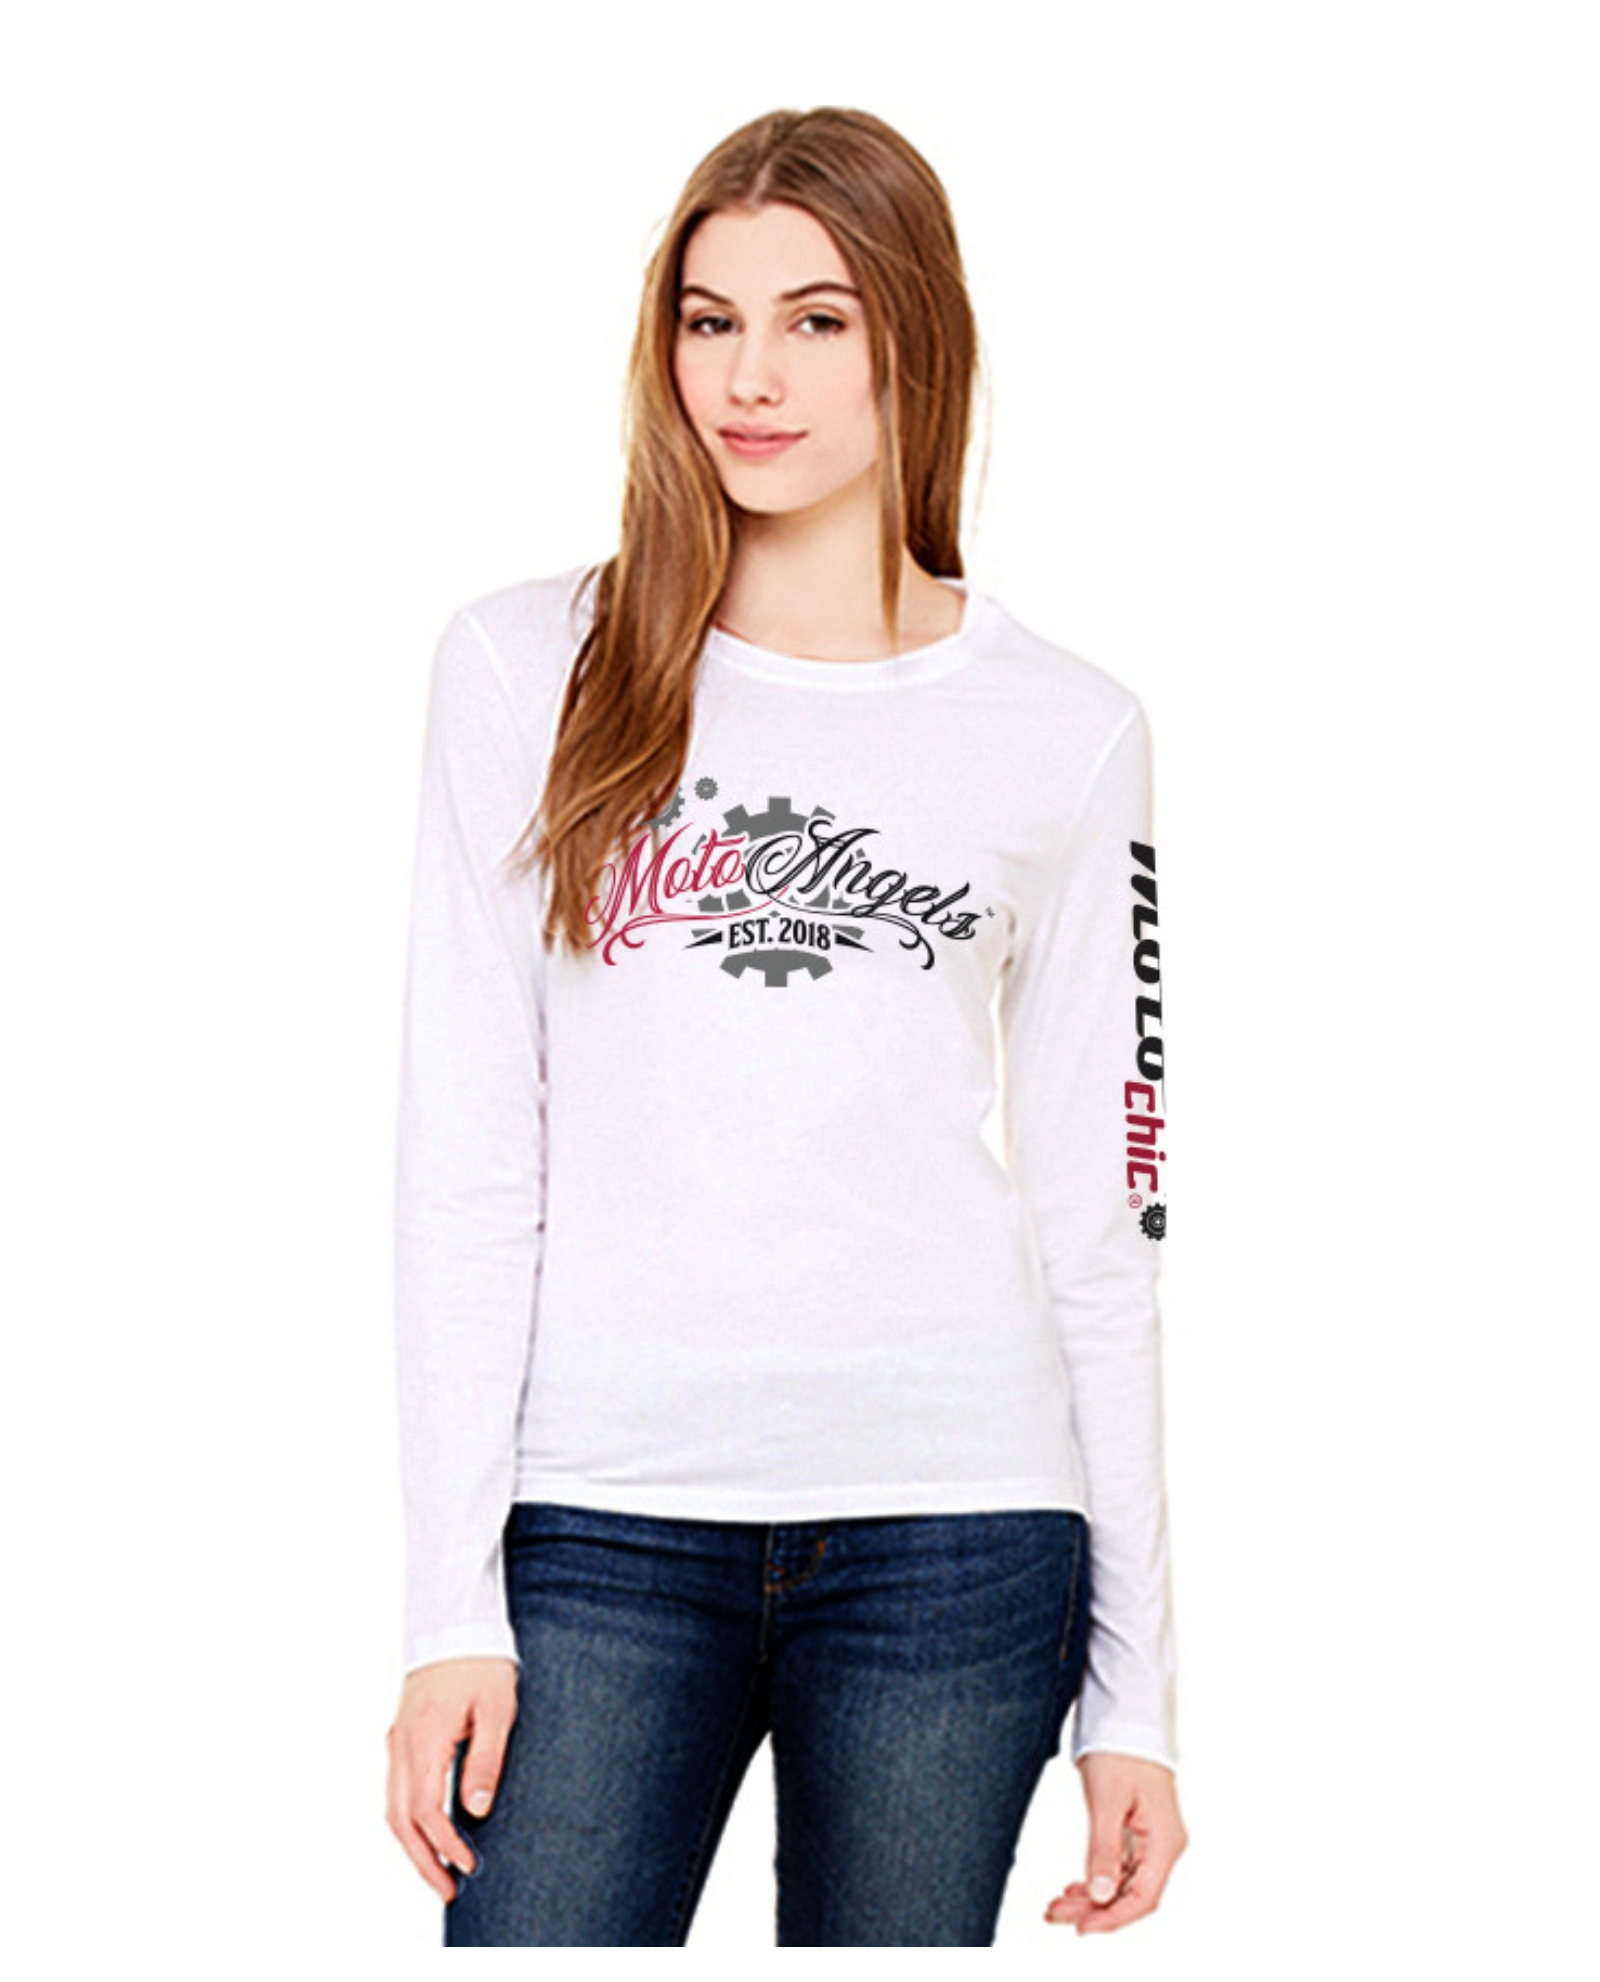 c8a381b55811ed MotoAngels™ Ladies Antimicrobial Long Sleeve Tee - MotoChic®